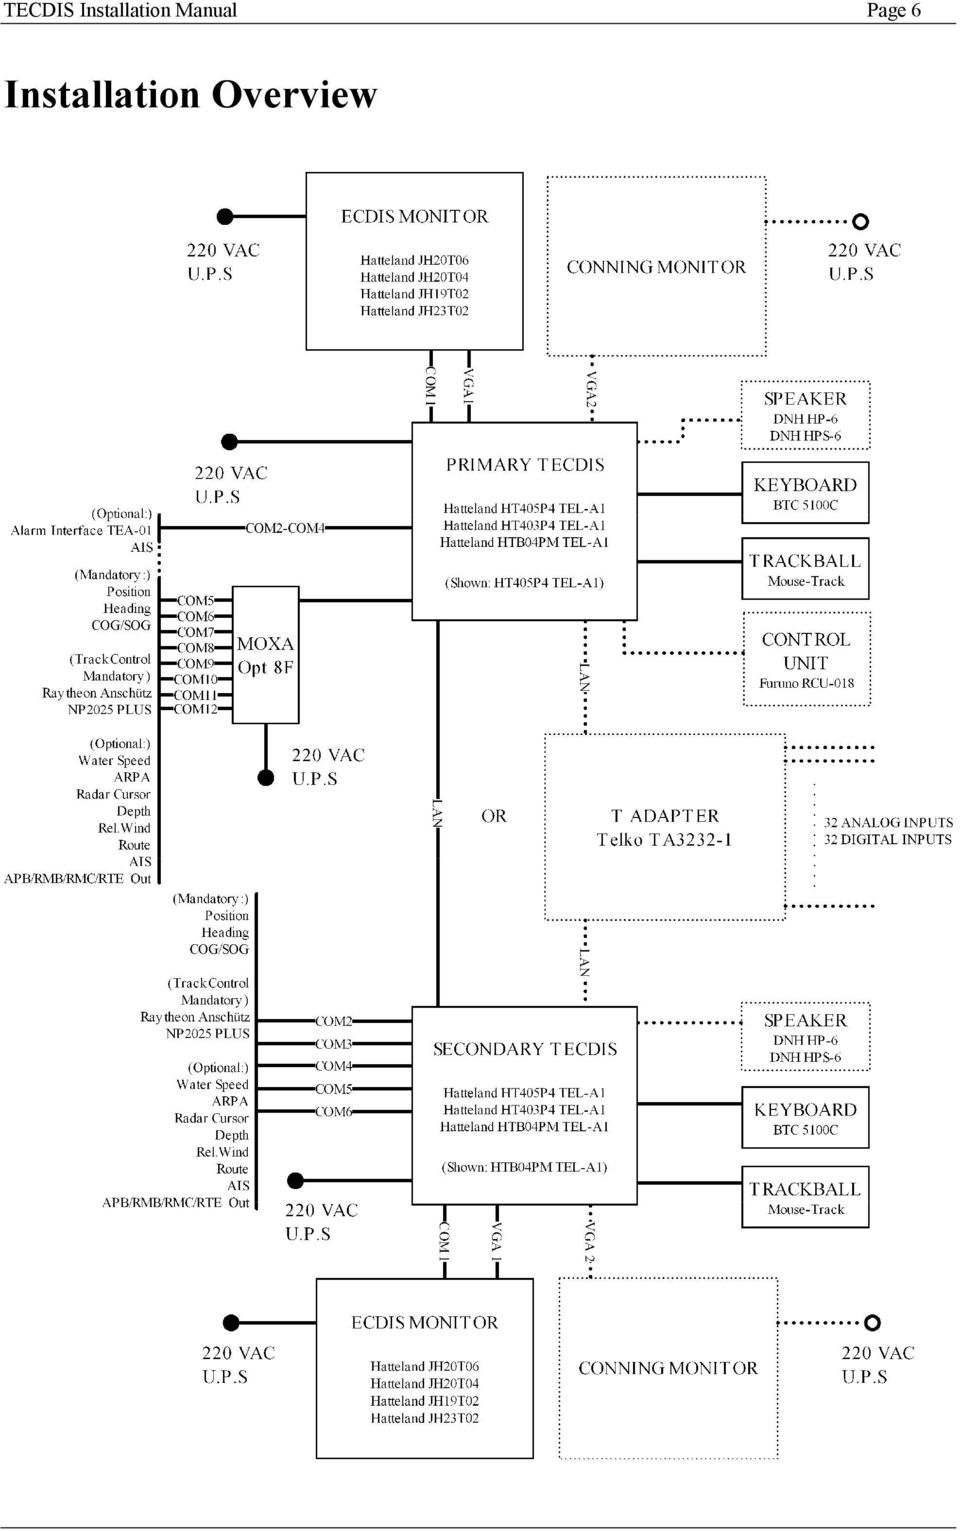 Installation Manual A Fully Type Approved Electronic Chart And Free Circuit Diagrams 4u Basic Sound Generator Diagram Specifications Ht403p4 Tel A1 Processor 19 Rack Mount Computer Intel Pentium 4 30ghz S478 Intelligent Preheating Dual Head Video Card